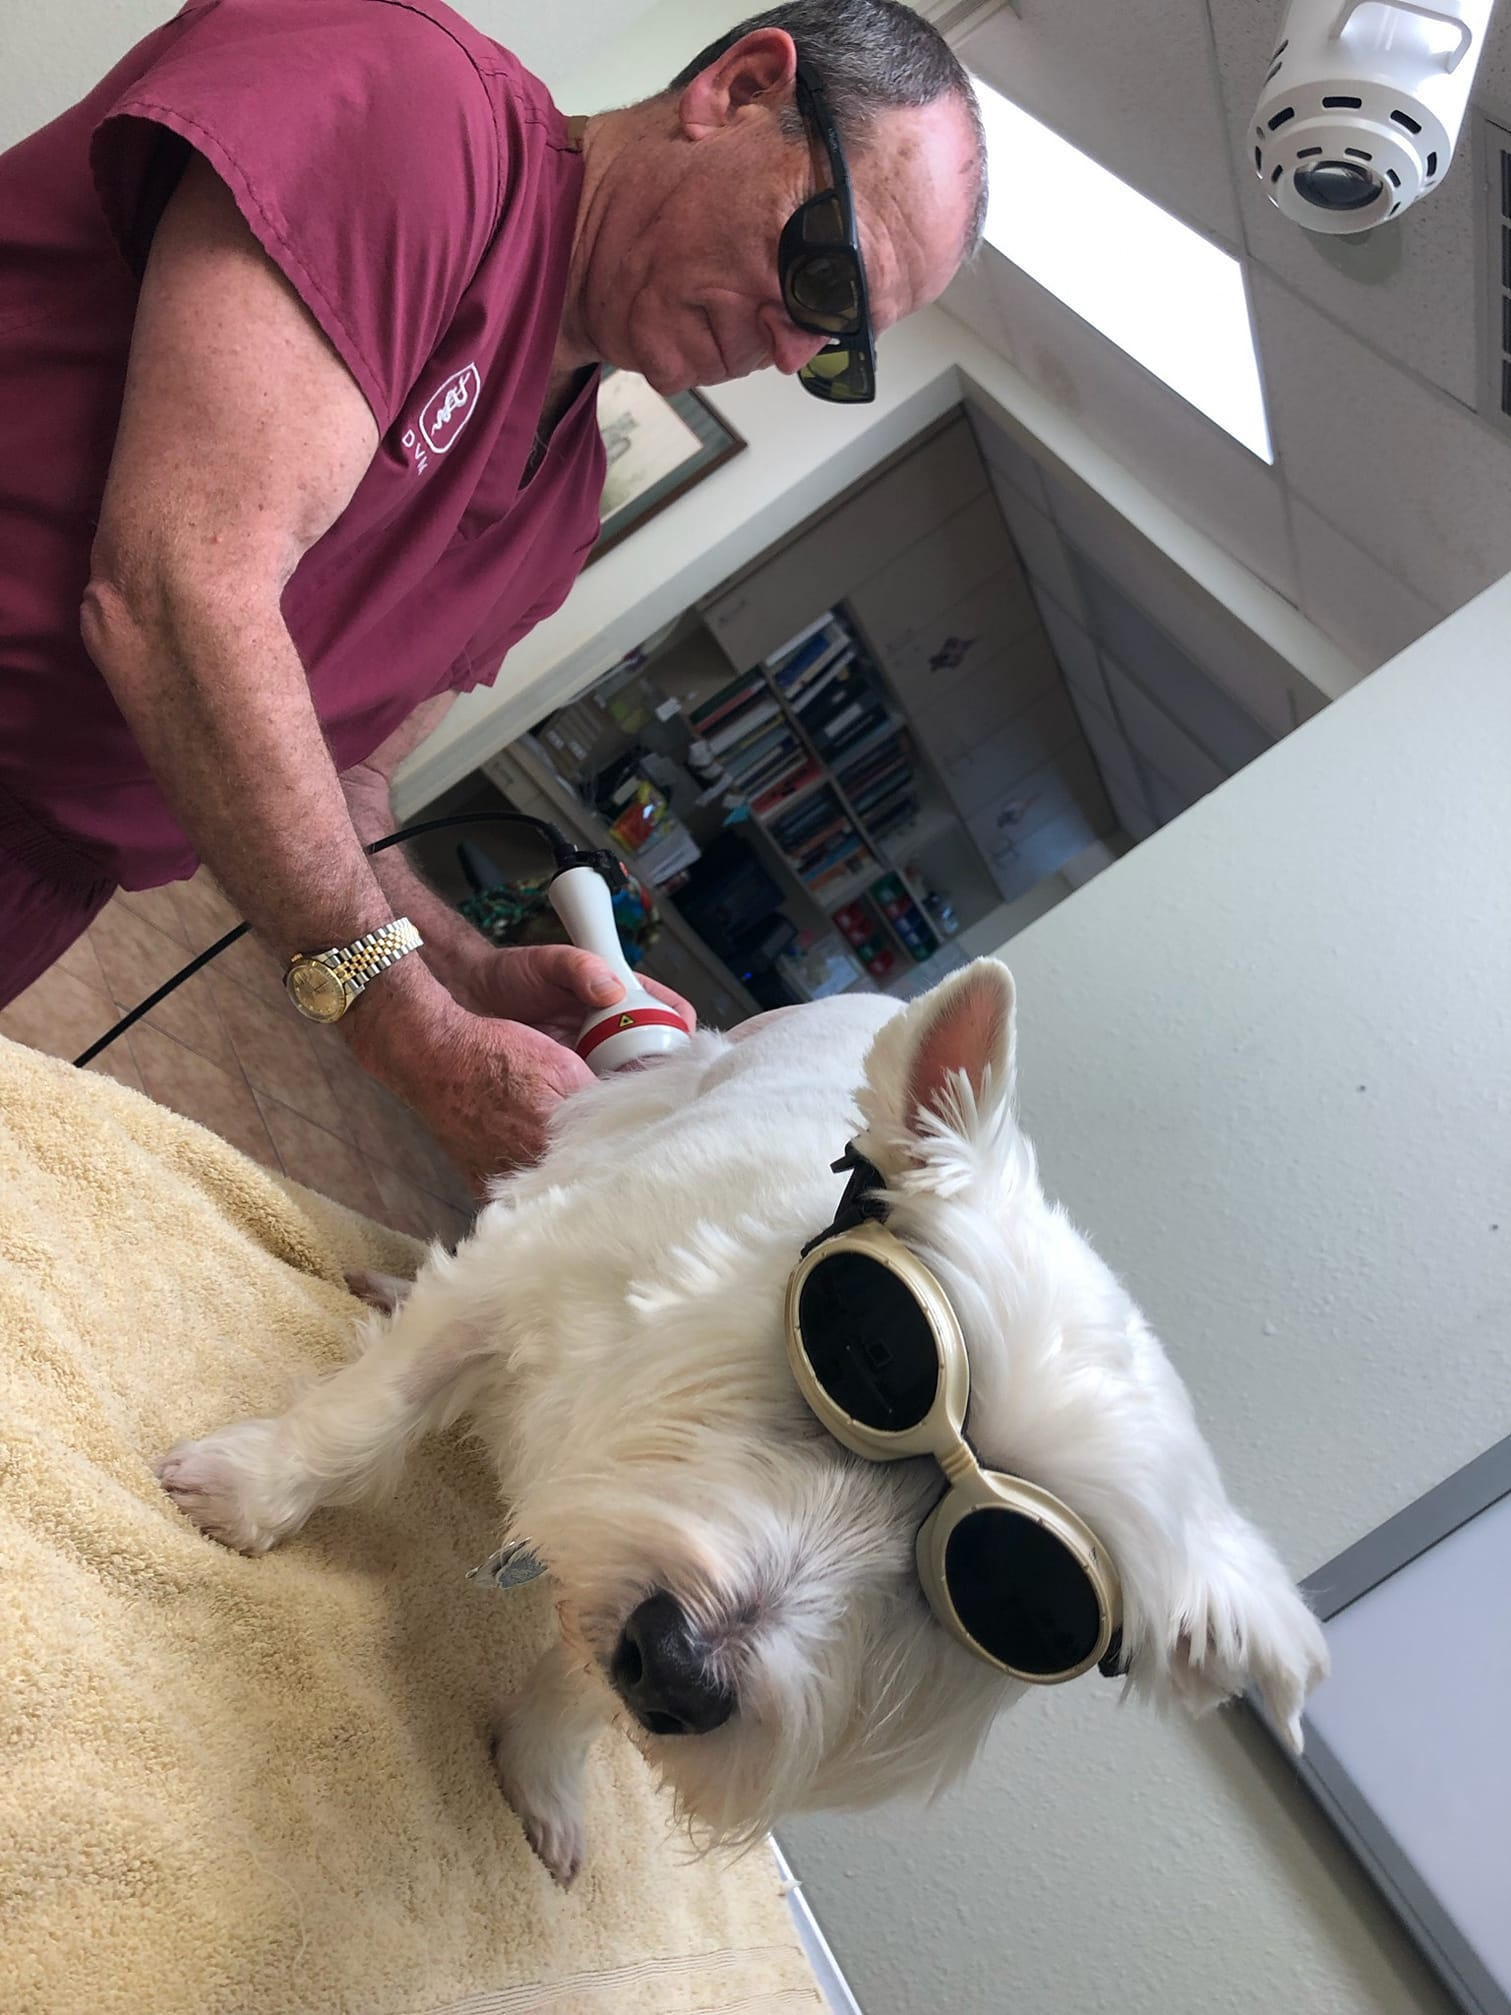 dr-reeves-cold-laser-therapy